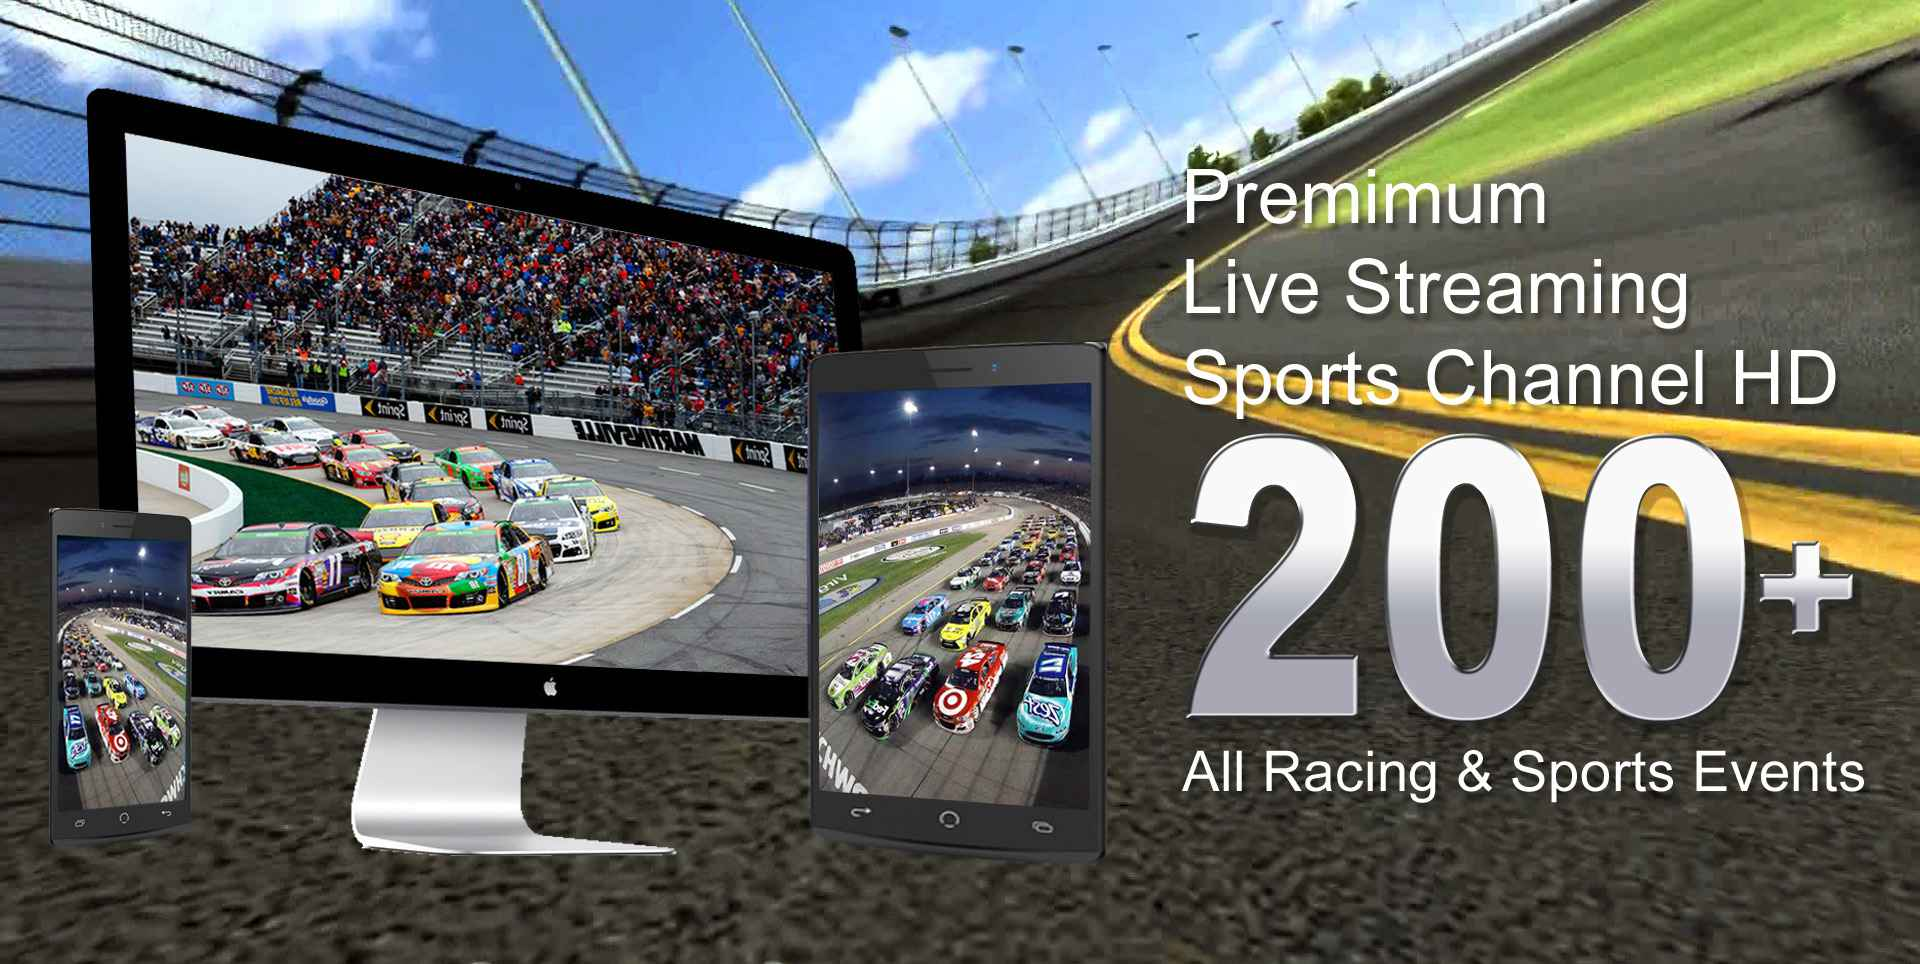 2015-o-reilly-auto-parts-challenge-at-texas-stream